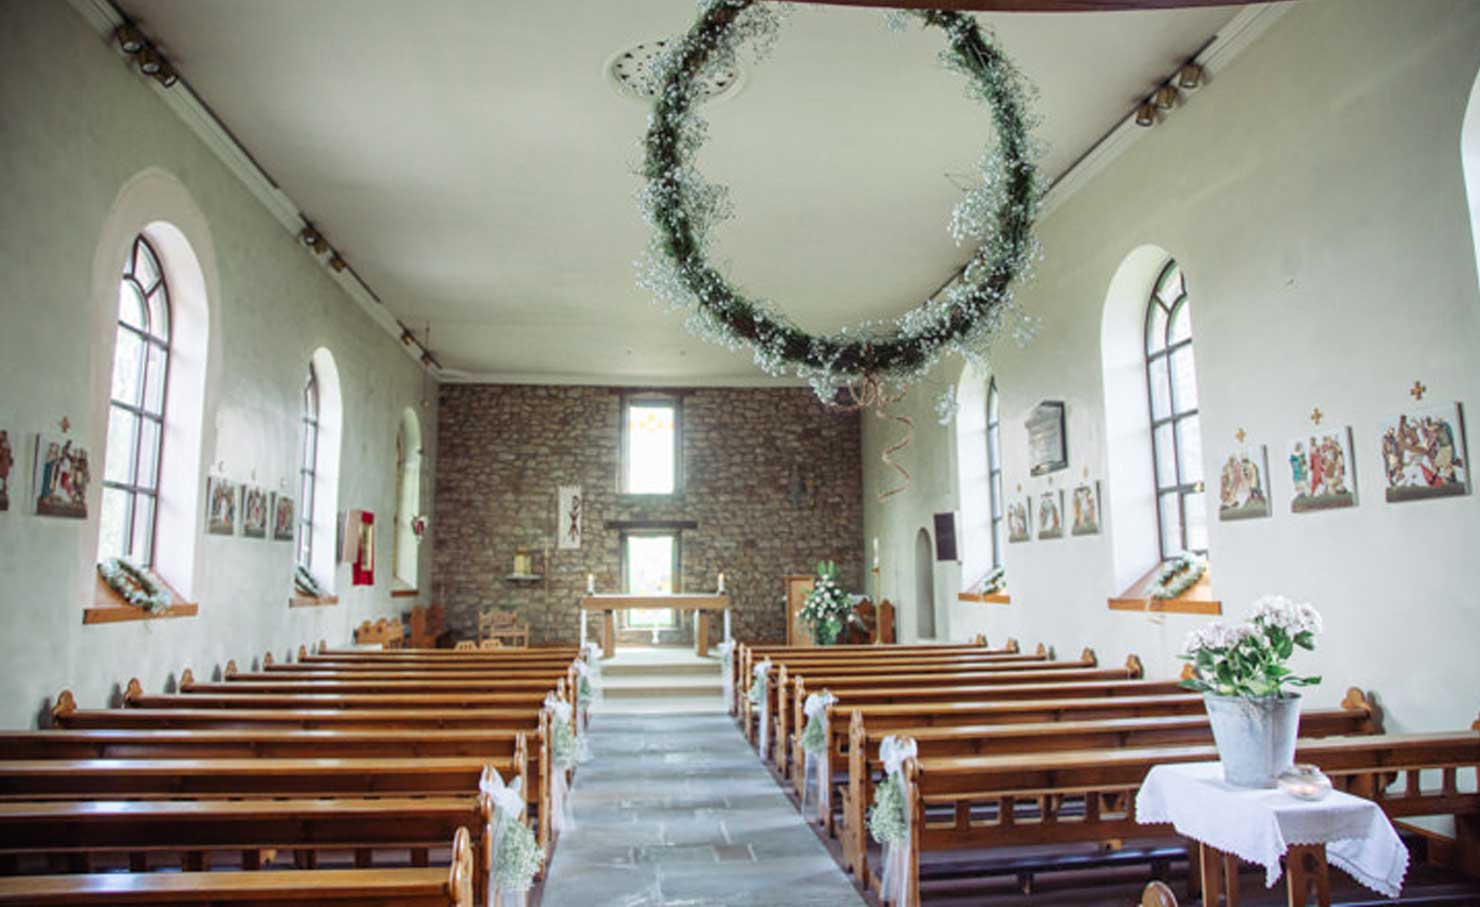 Rustic Church Wreath https://www.boho-weddings.com/wp-content/uploads/2018/05/14-Blush-and-Sage-Rustic-Chic-Farm-wedding-by-Delicious-Photography.jpg